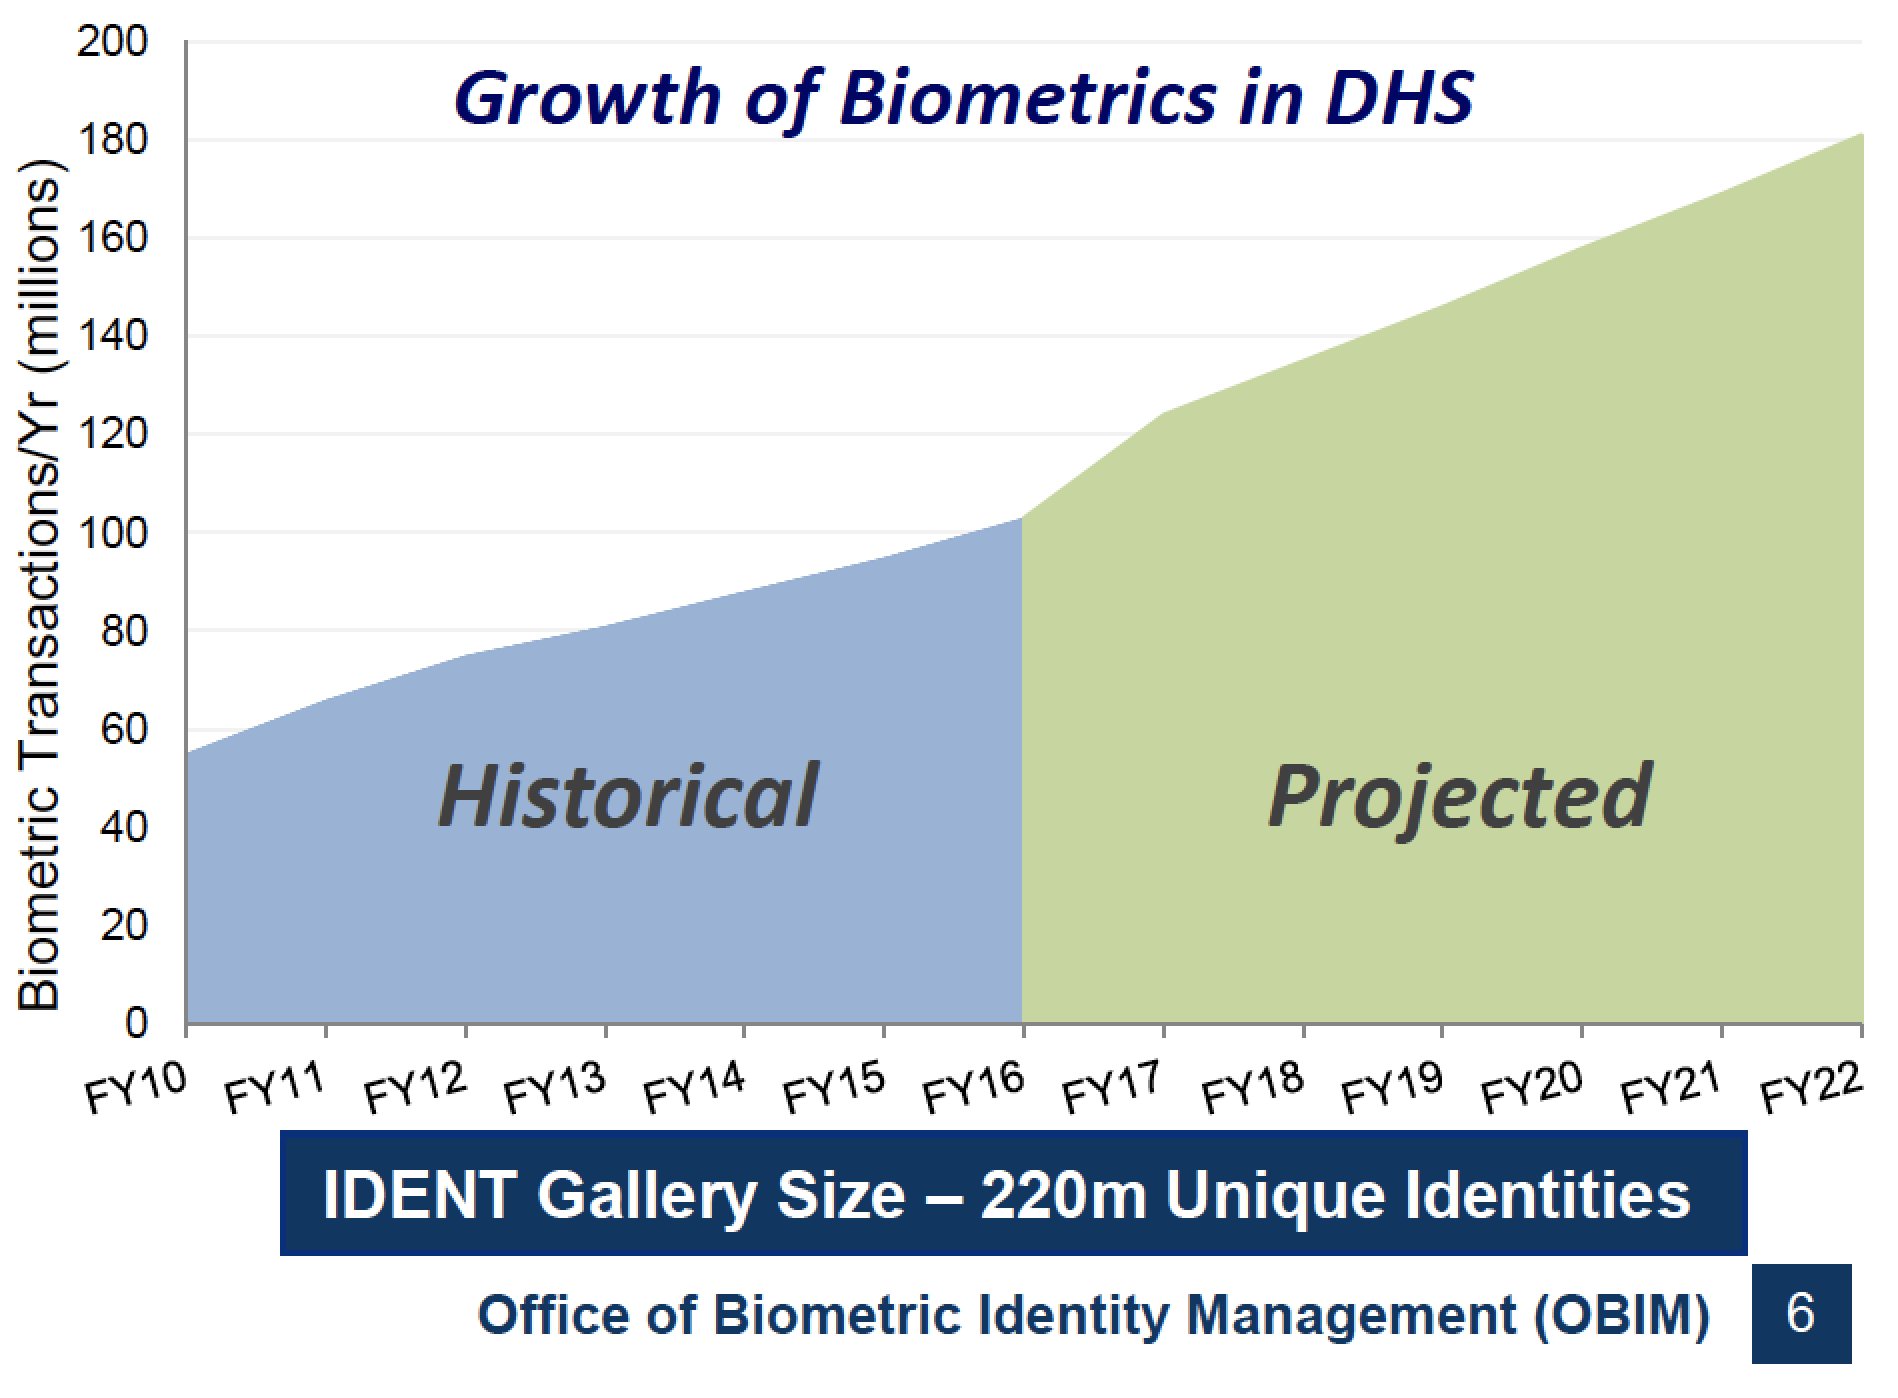 DHS Growth of Biometrics